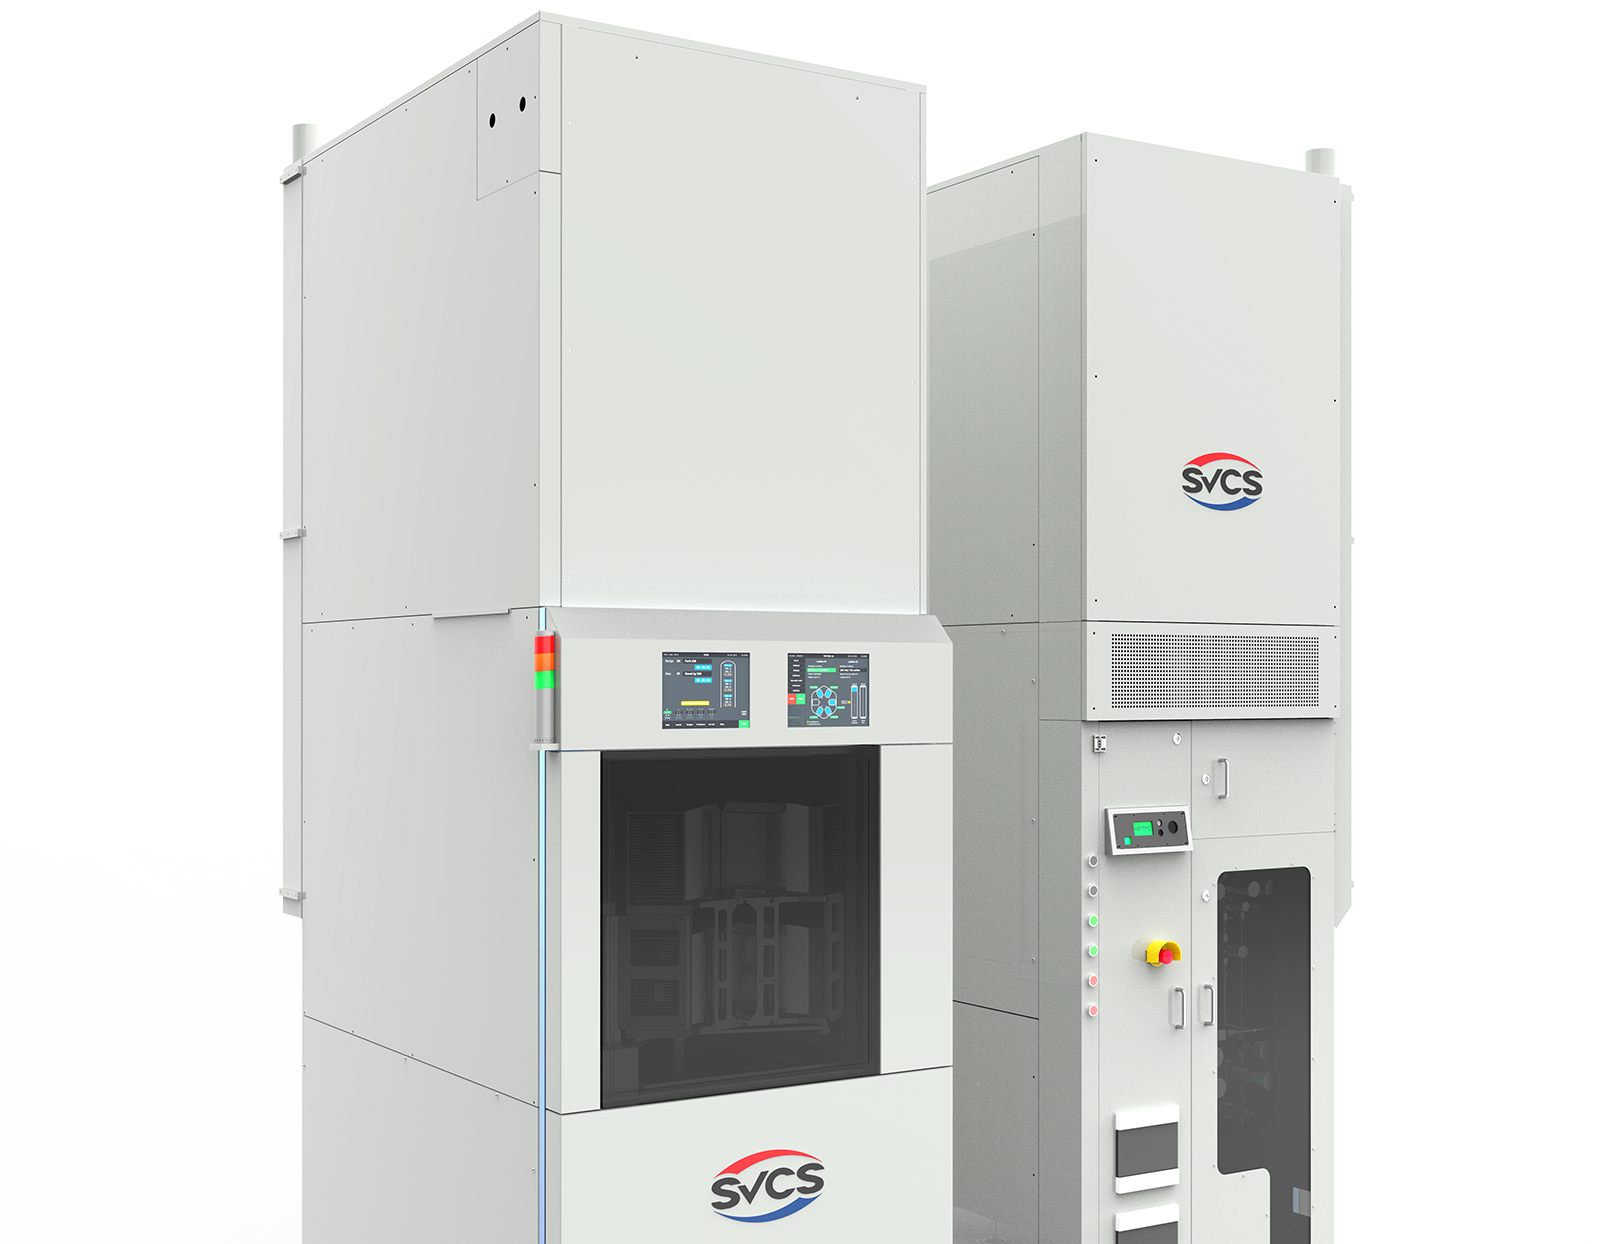 https://empbv.com/wp-content/uploads/2020/05/svcs_vertical-furnace-for-rd-and-production.png